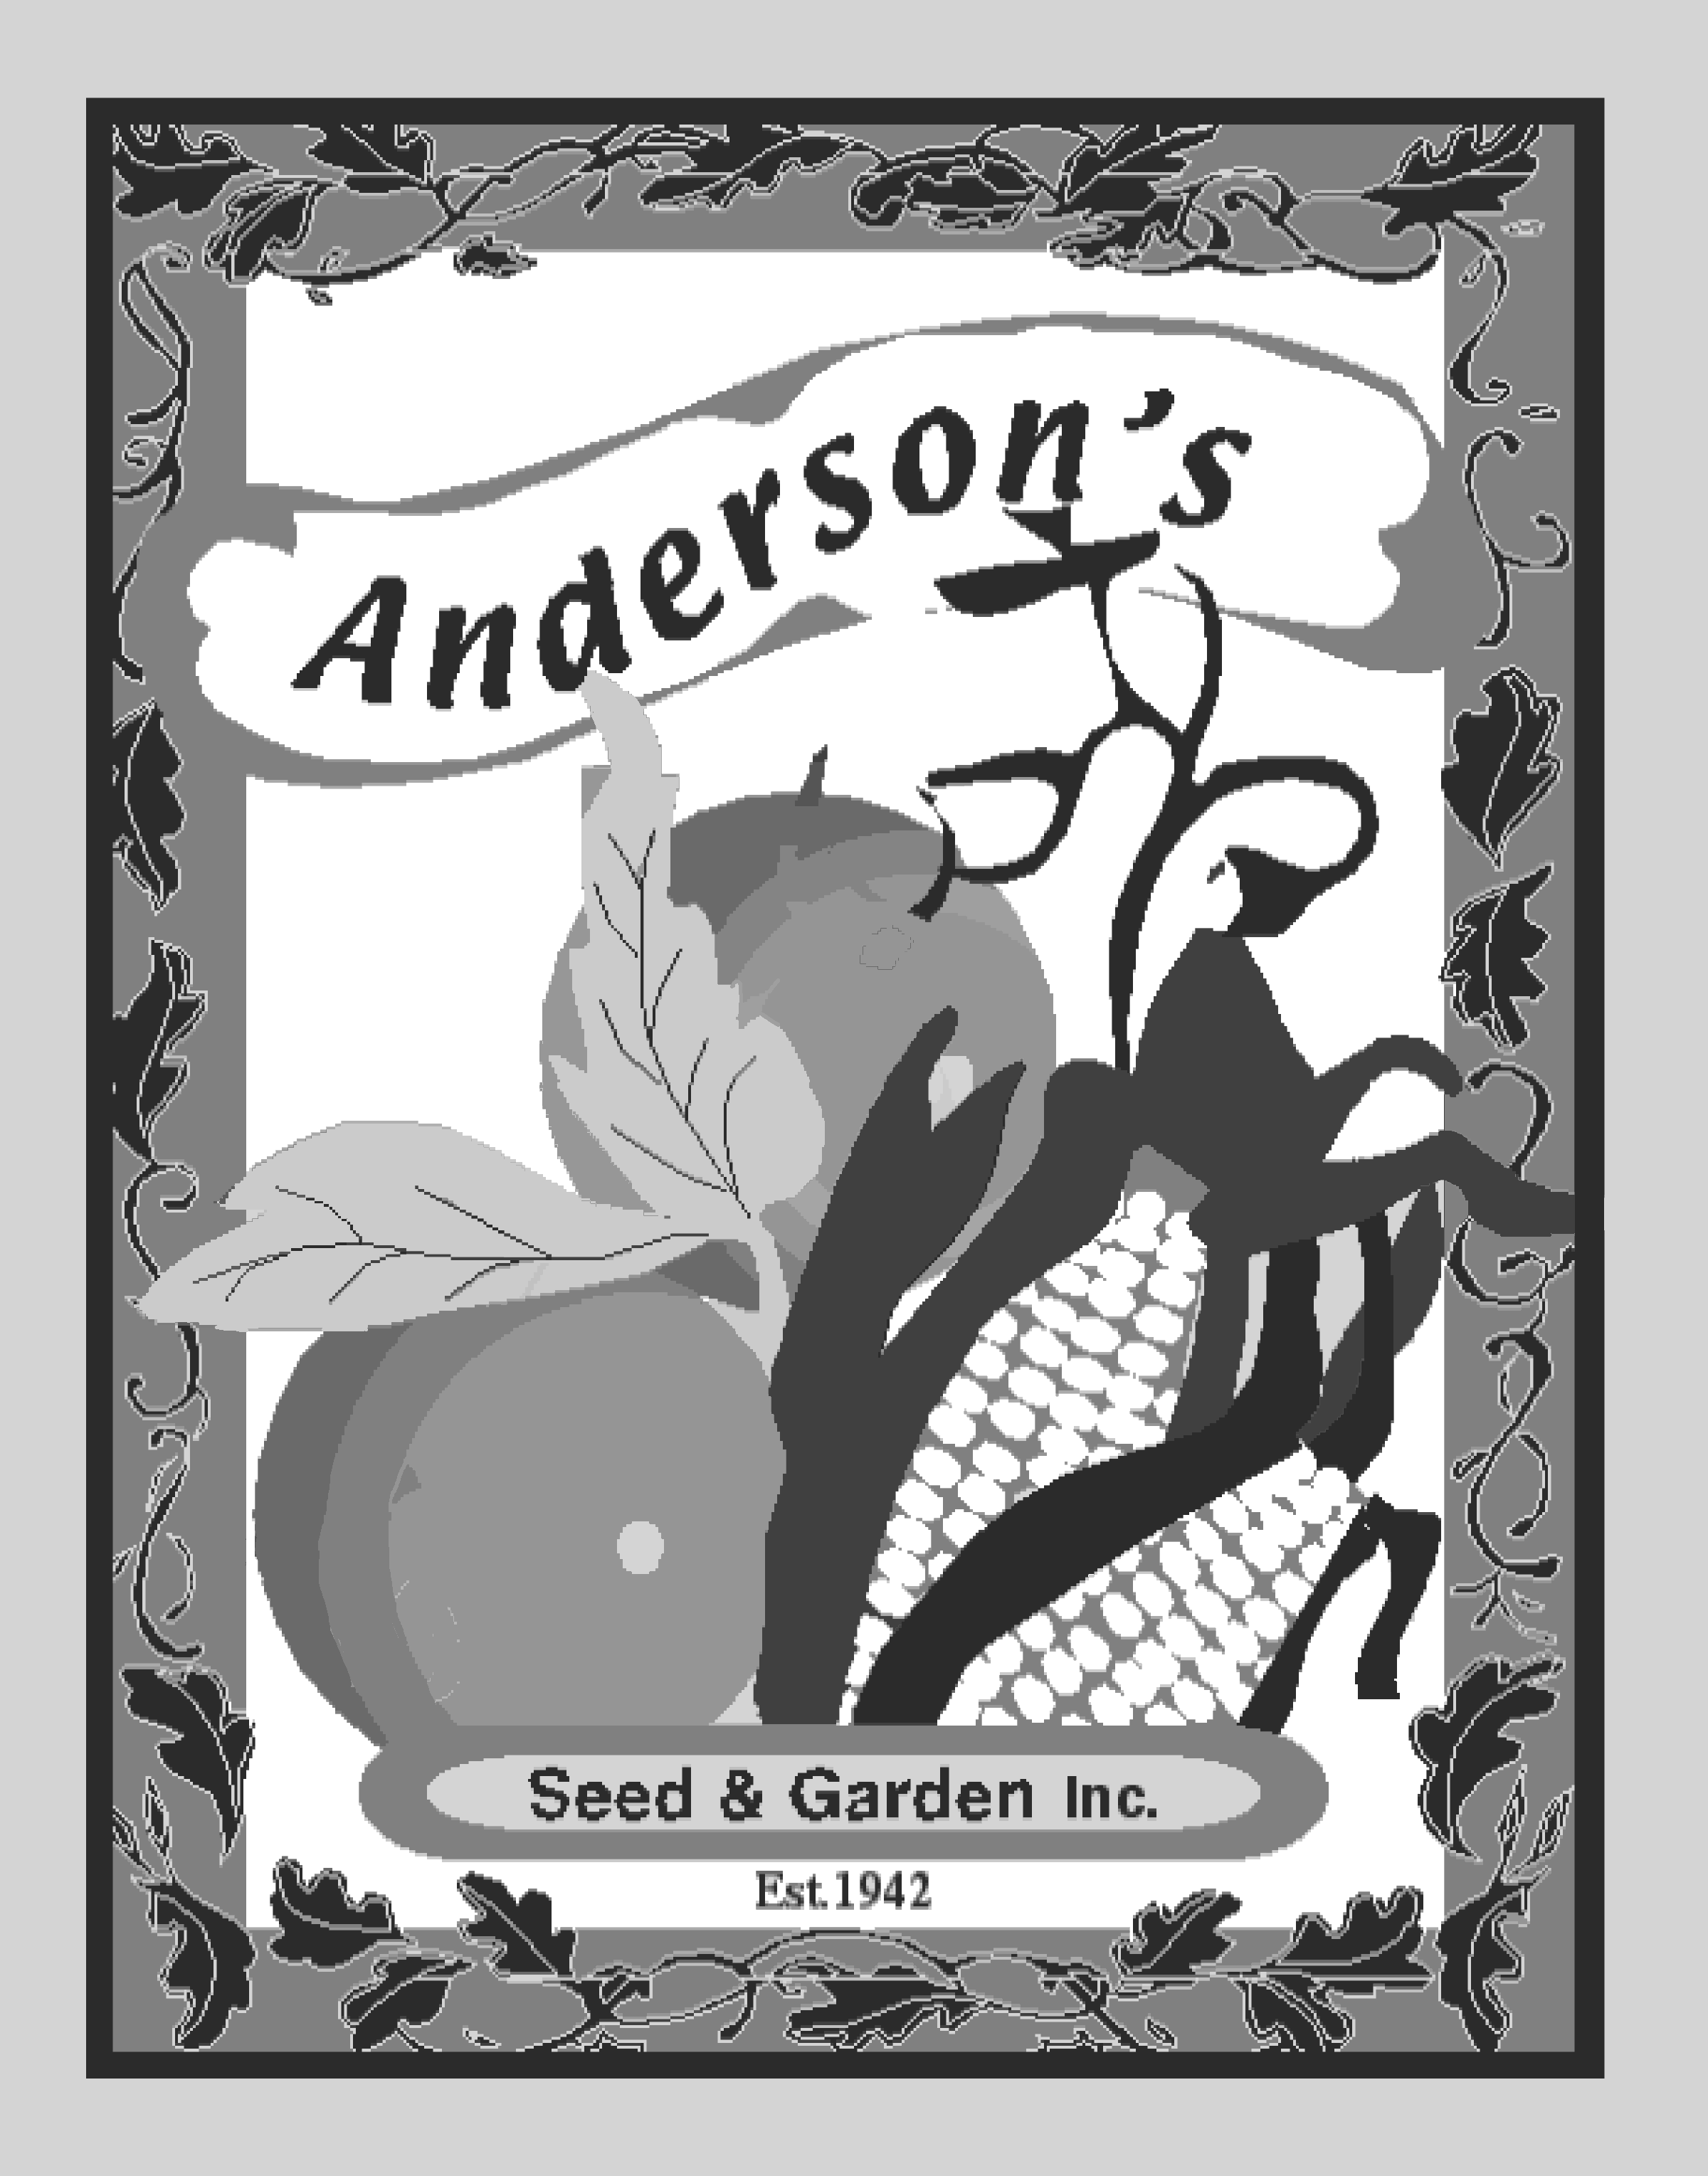 Cinderella Heirloom Pumpkin Seed 1 oz.